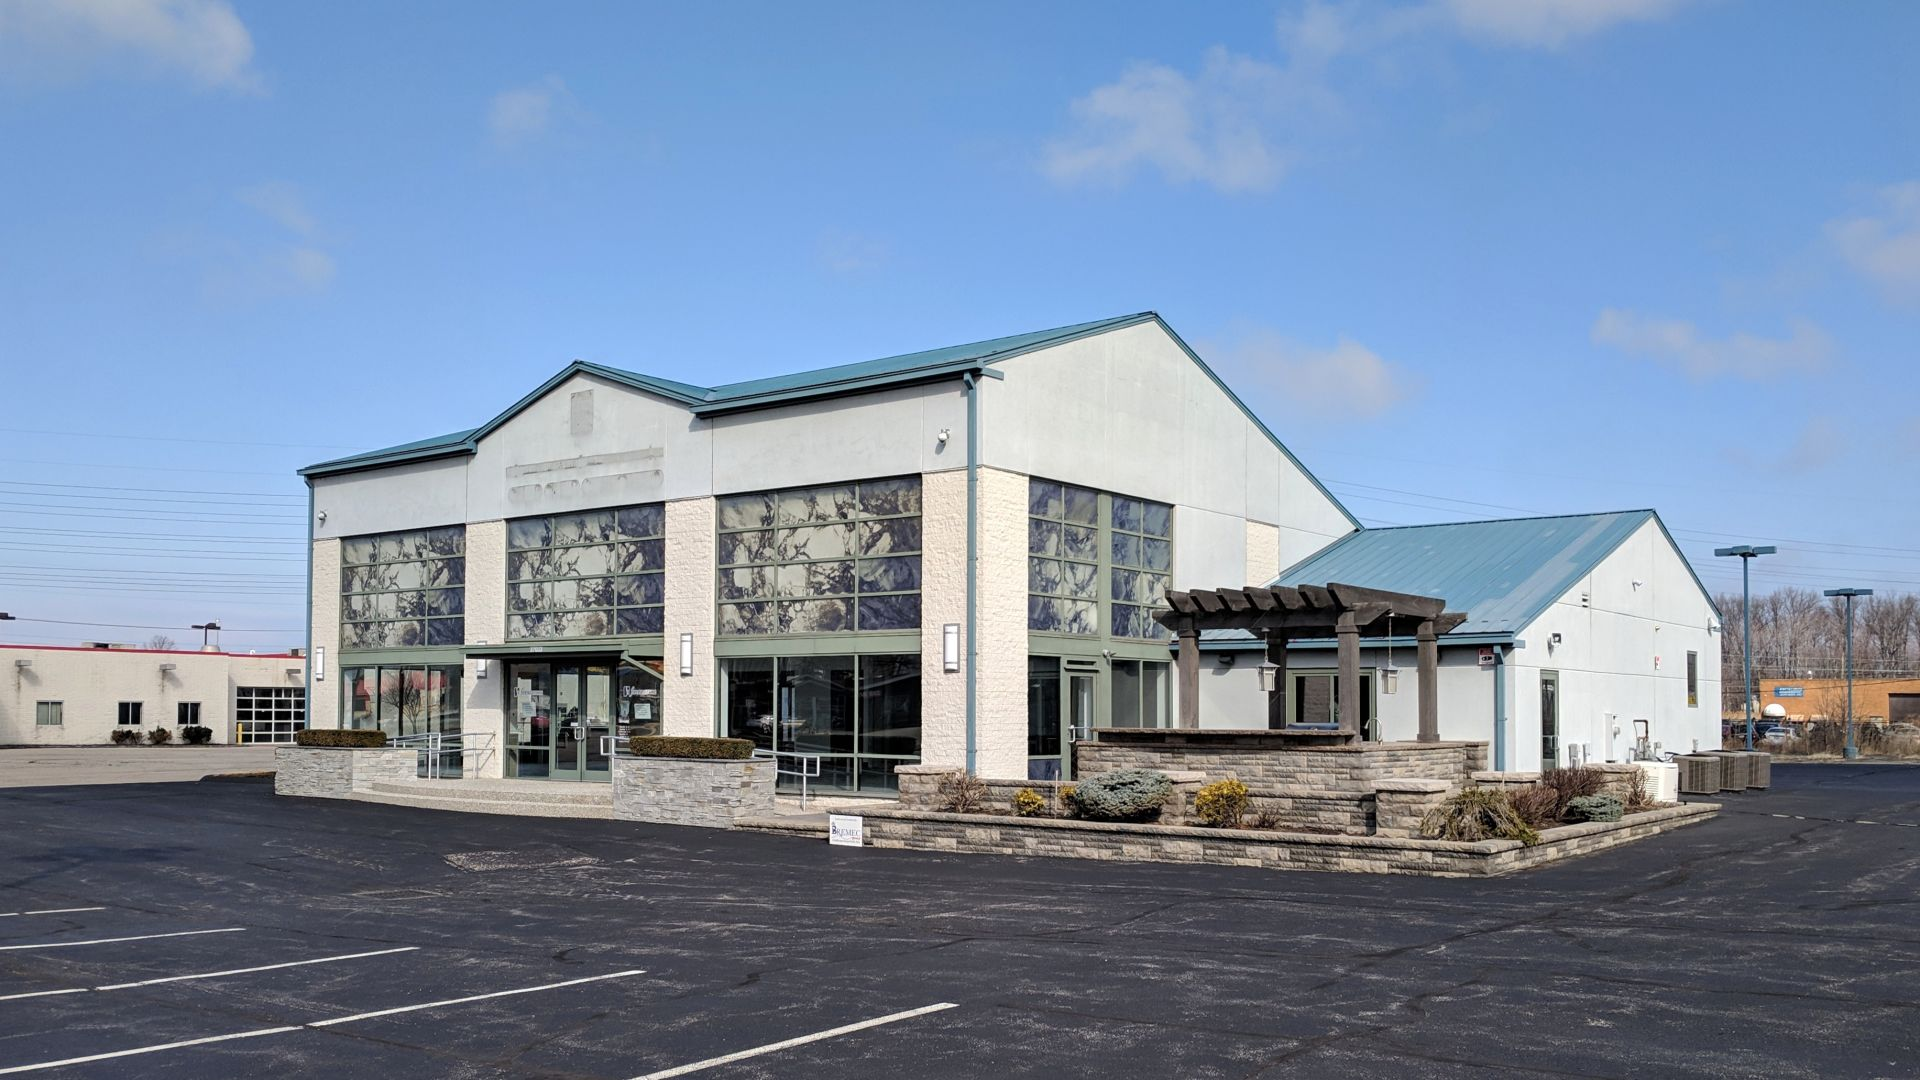 New Listing in Willoughby, Ohio. Very nice building!